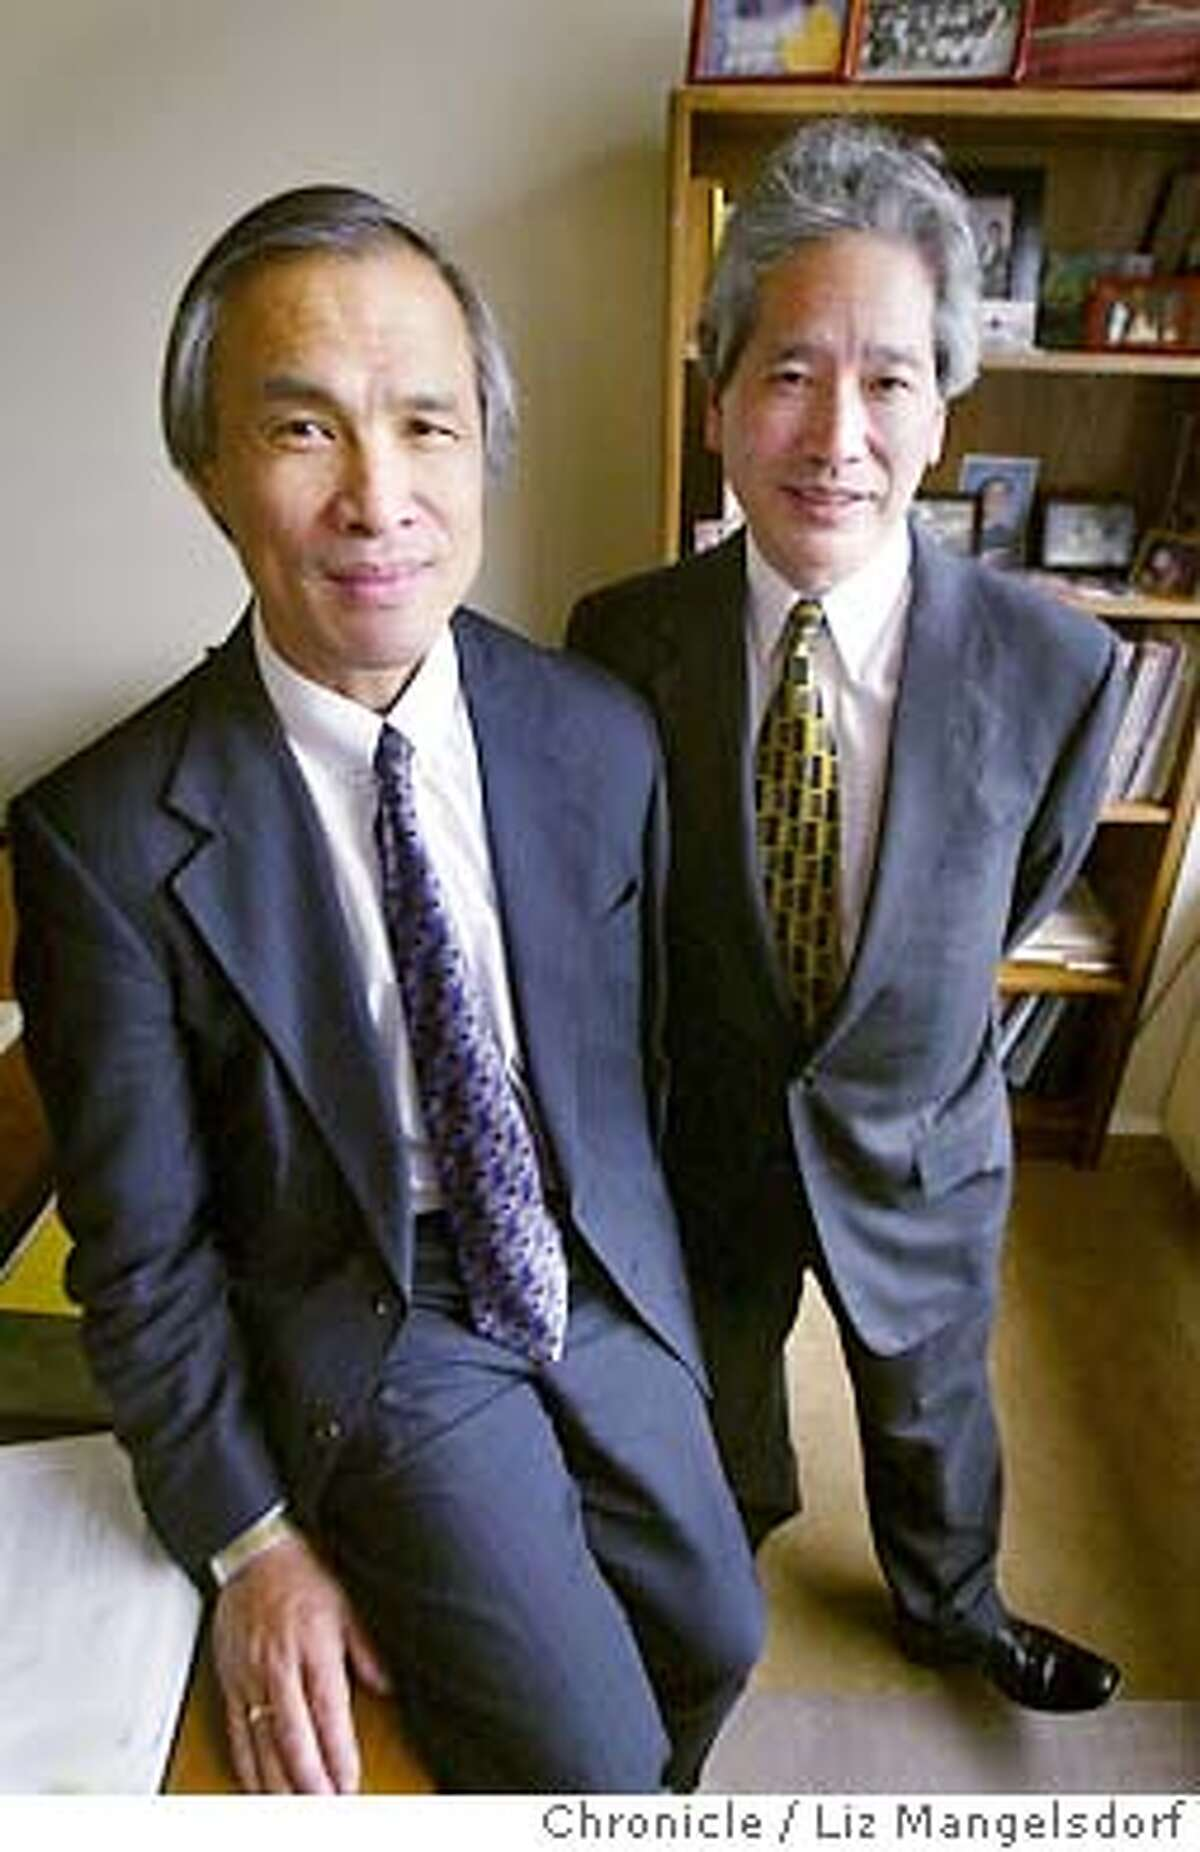 Mike Lee, left, and Don Tamaki at their law firm. Mike and Kon were the two lawyers for patrick Hayashi, one of the men who went to court to establish ownershi of the barry bonds HR ball. Liz Mangelsdorf/SF chronicle